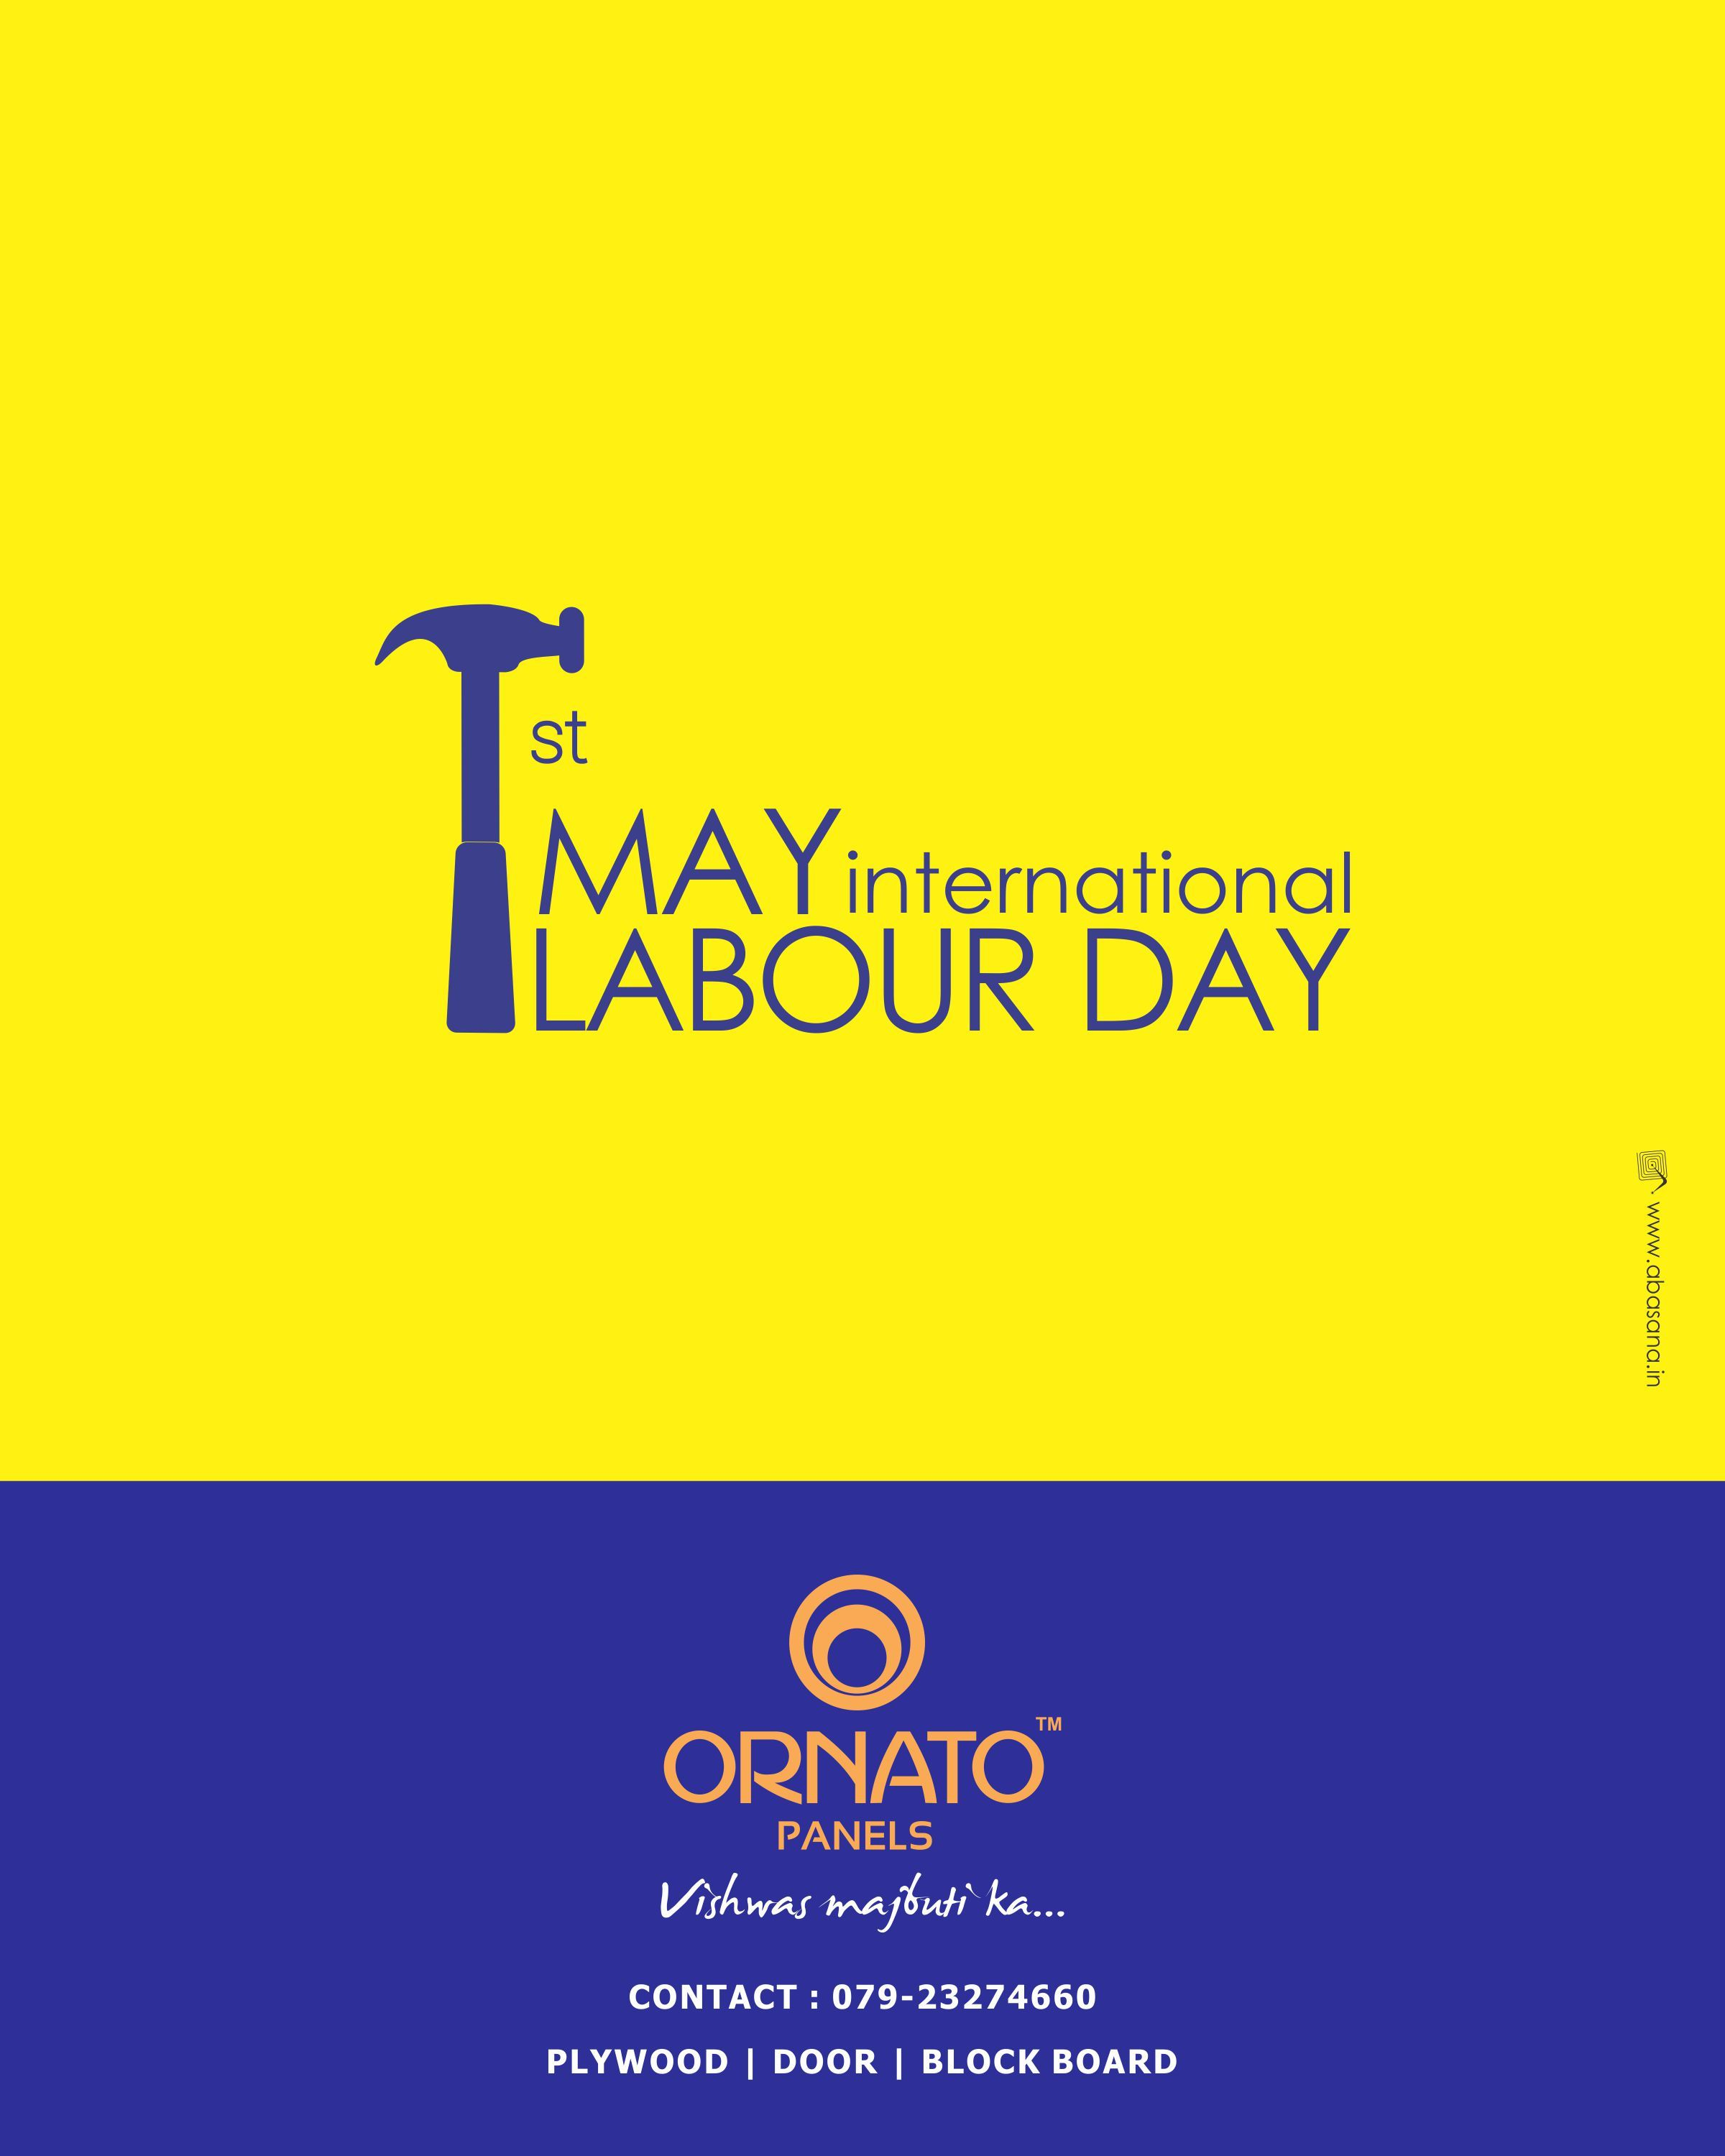 1st May International Labour Day Client Ornato Panels Agency